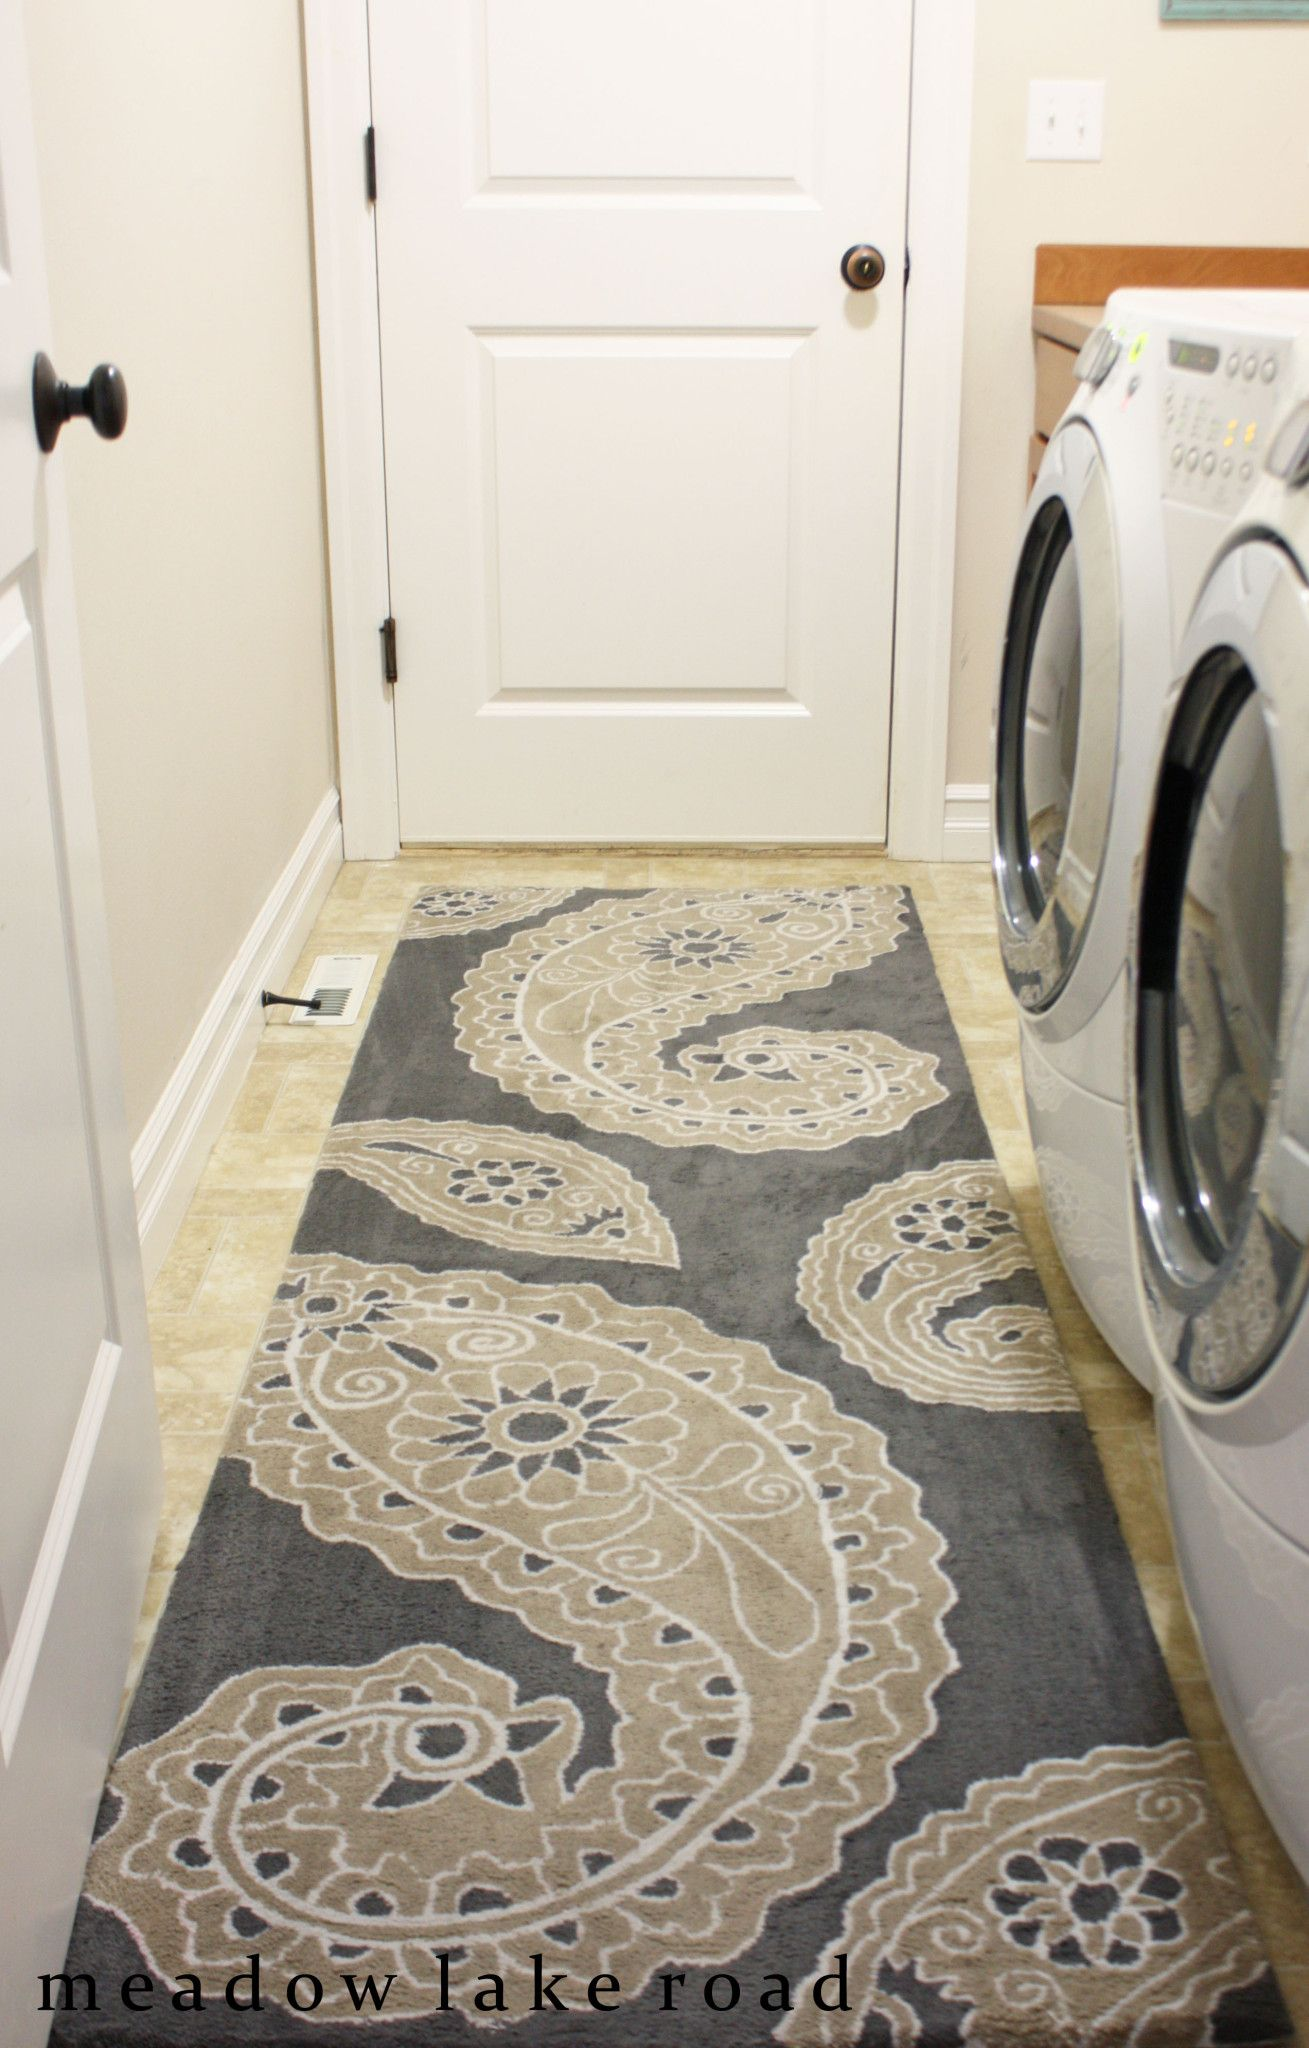 Why Rug Pads Are Important Meadow Lake Road